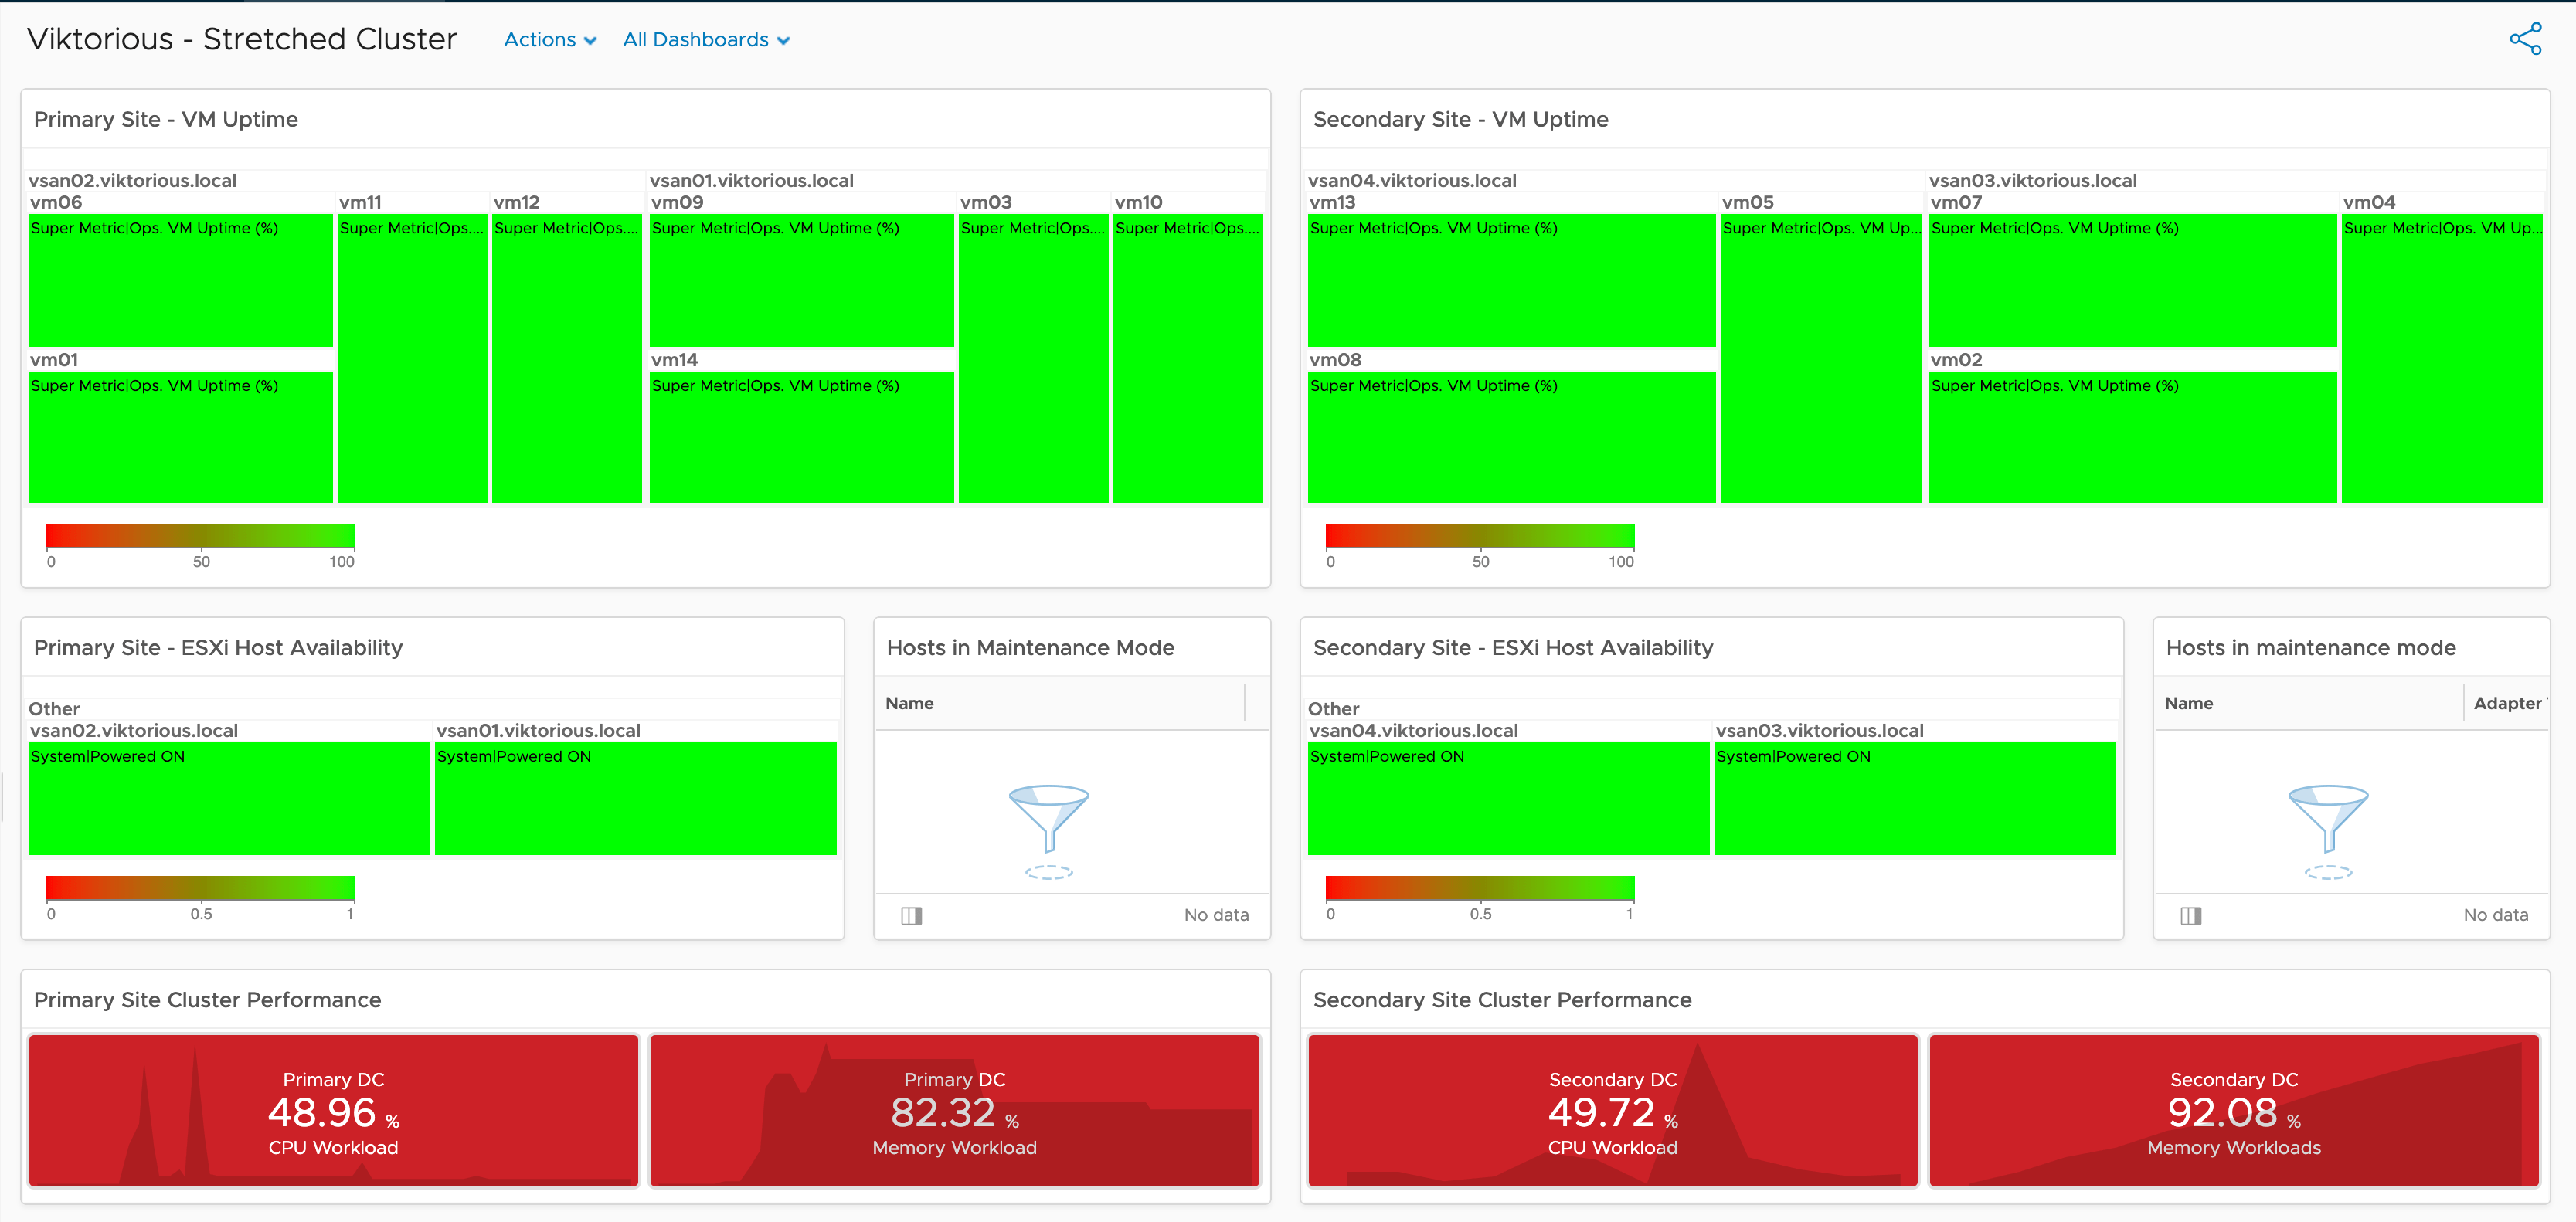 vROps: Building an overview dashboard for a stretched cluster datacenter